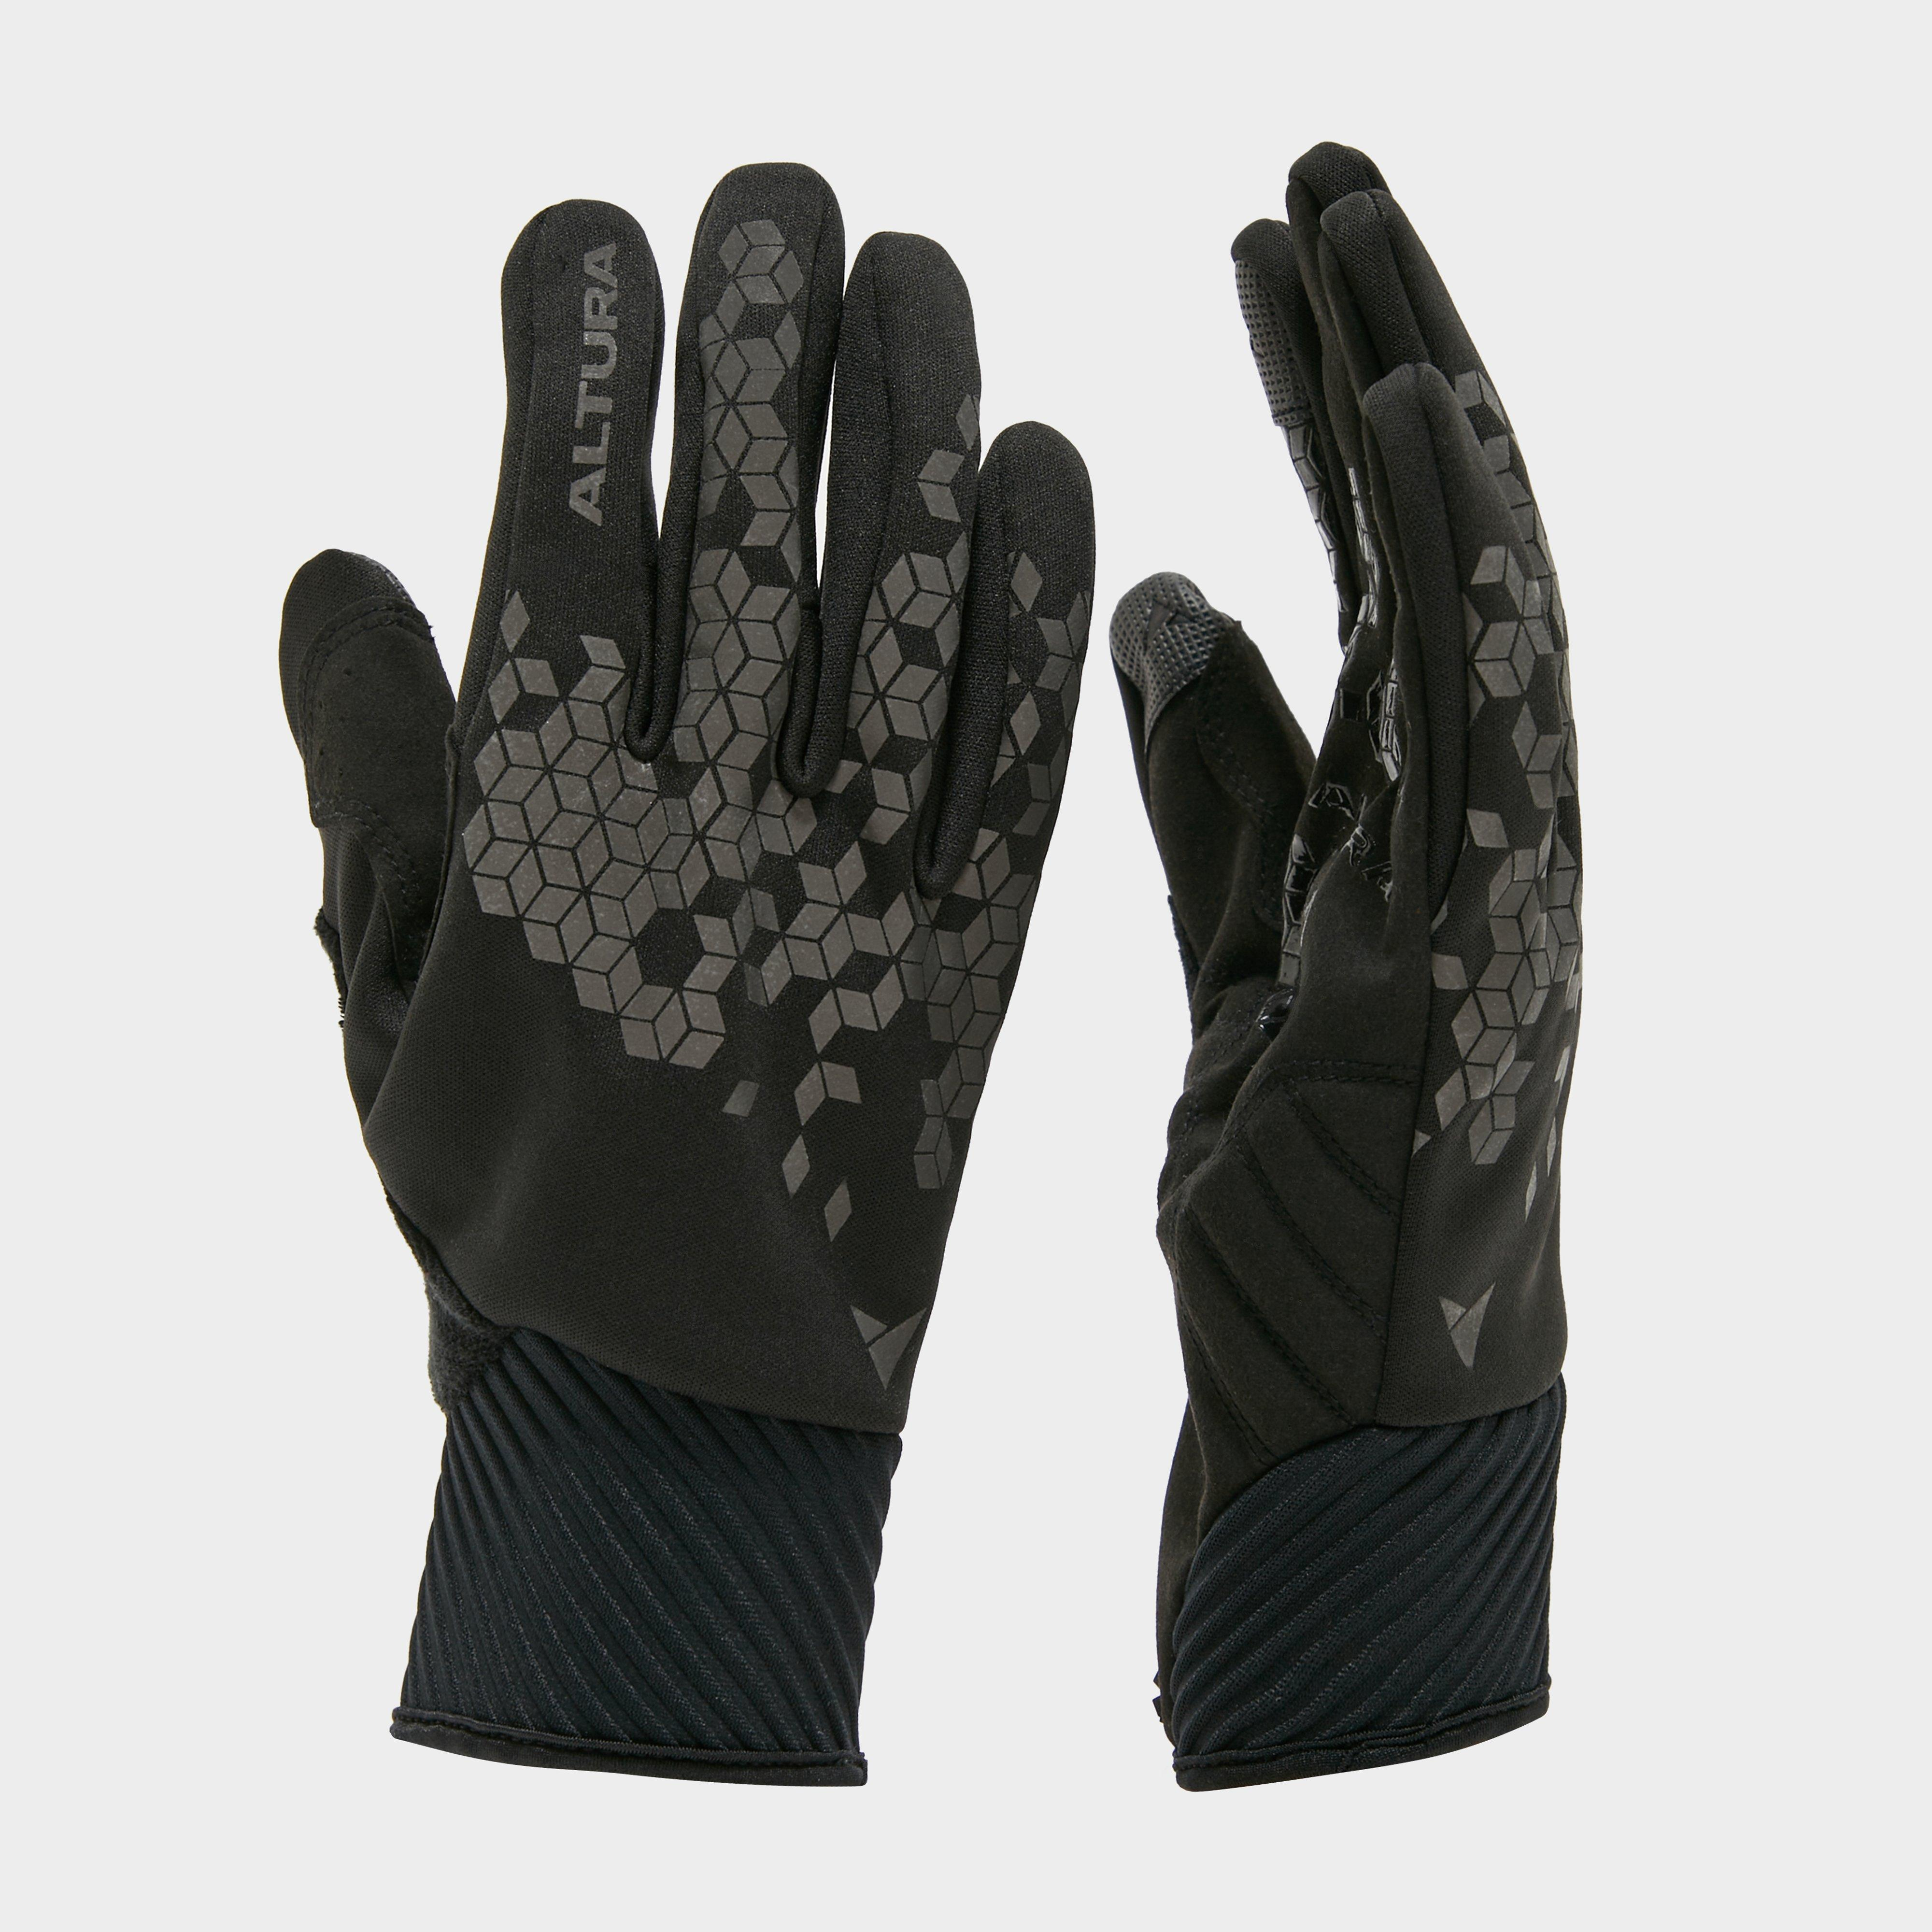 Altura Nightvision Windproof Cycling Glove - Black/Blk, Black